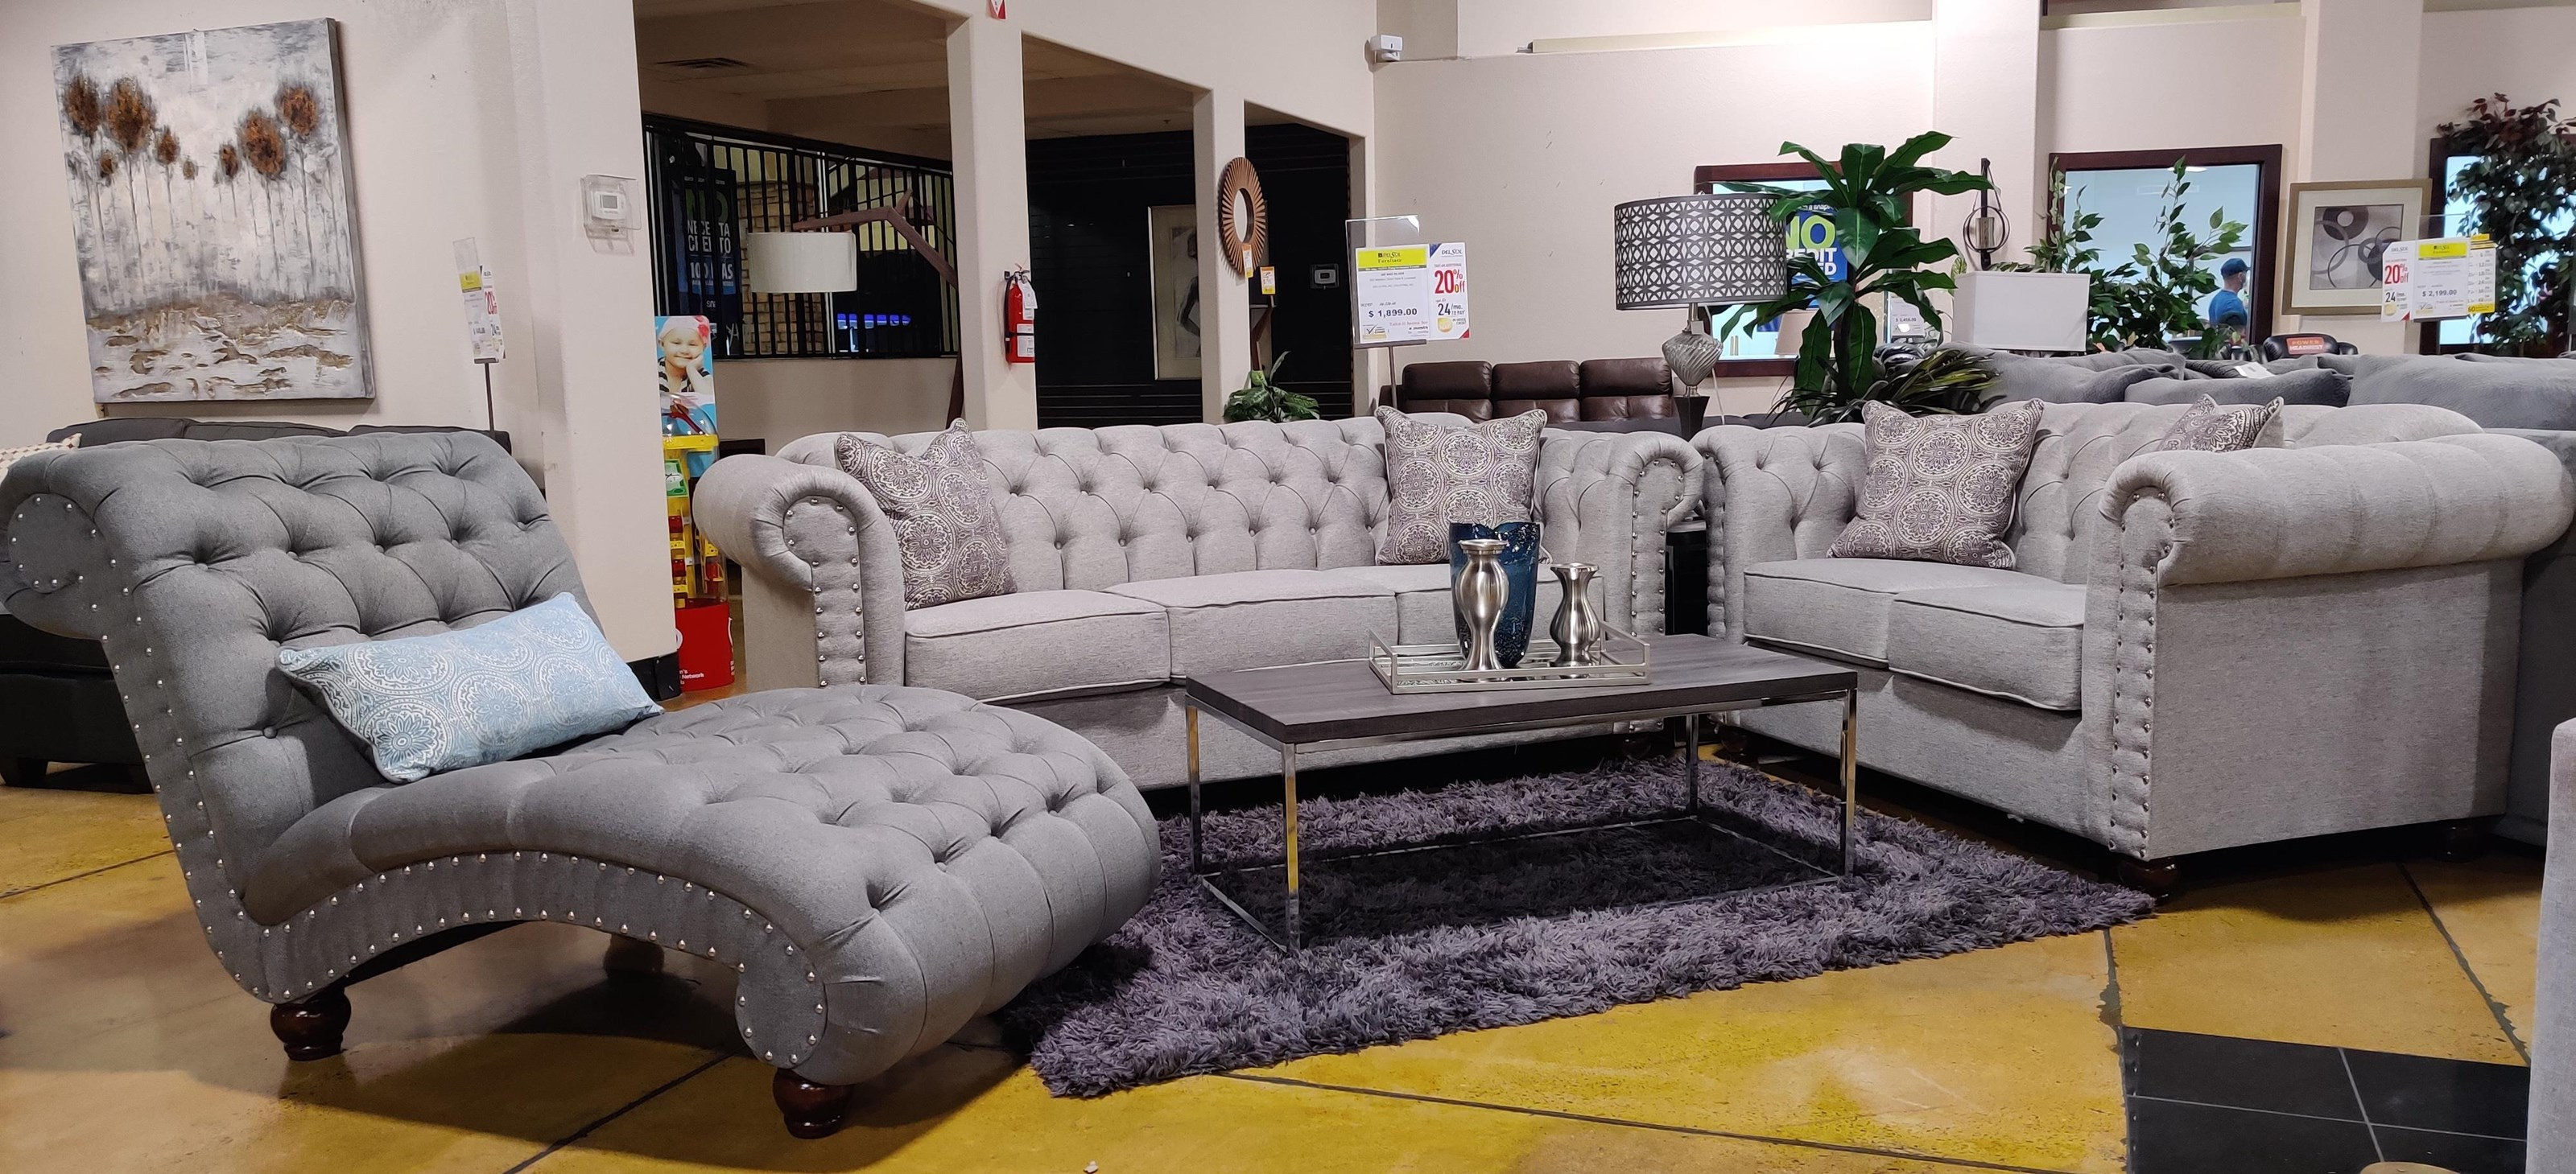 Sofa Love and Chaise